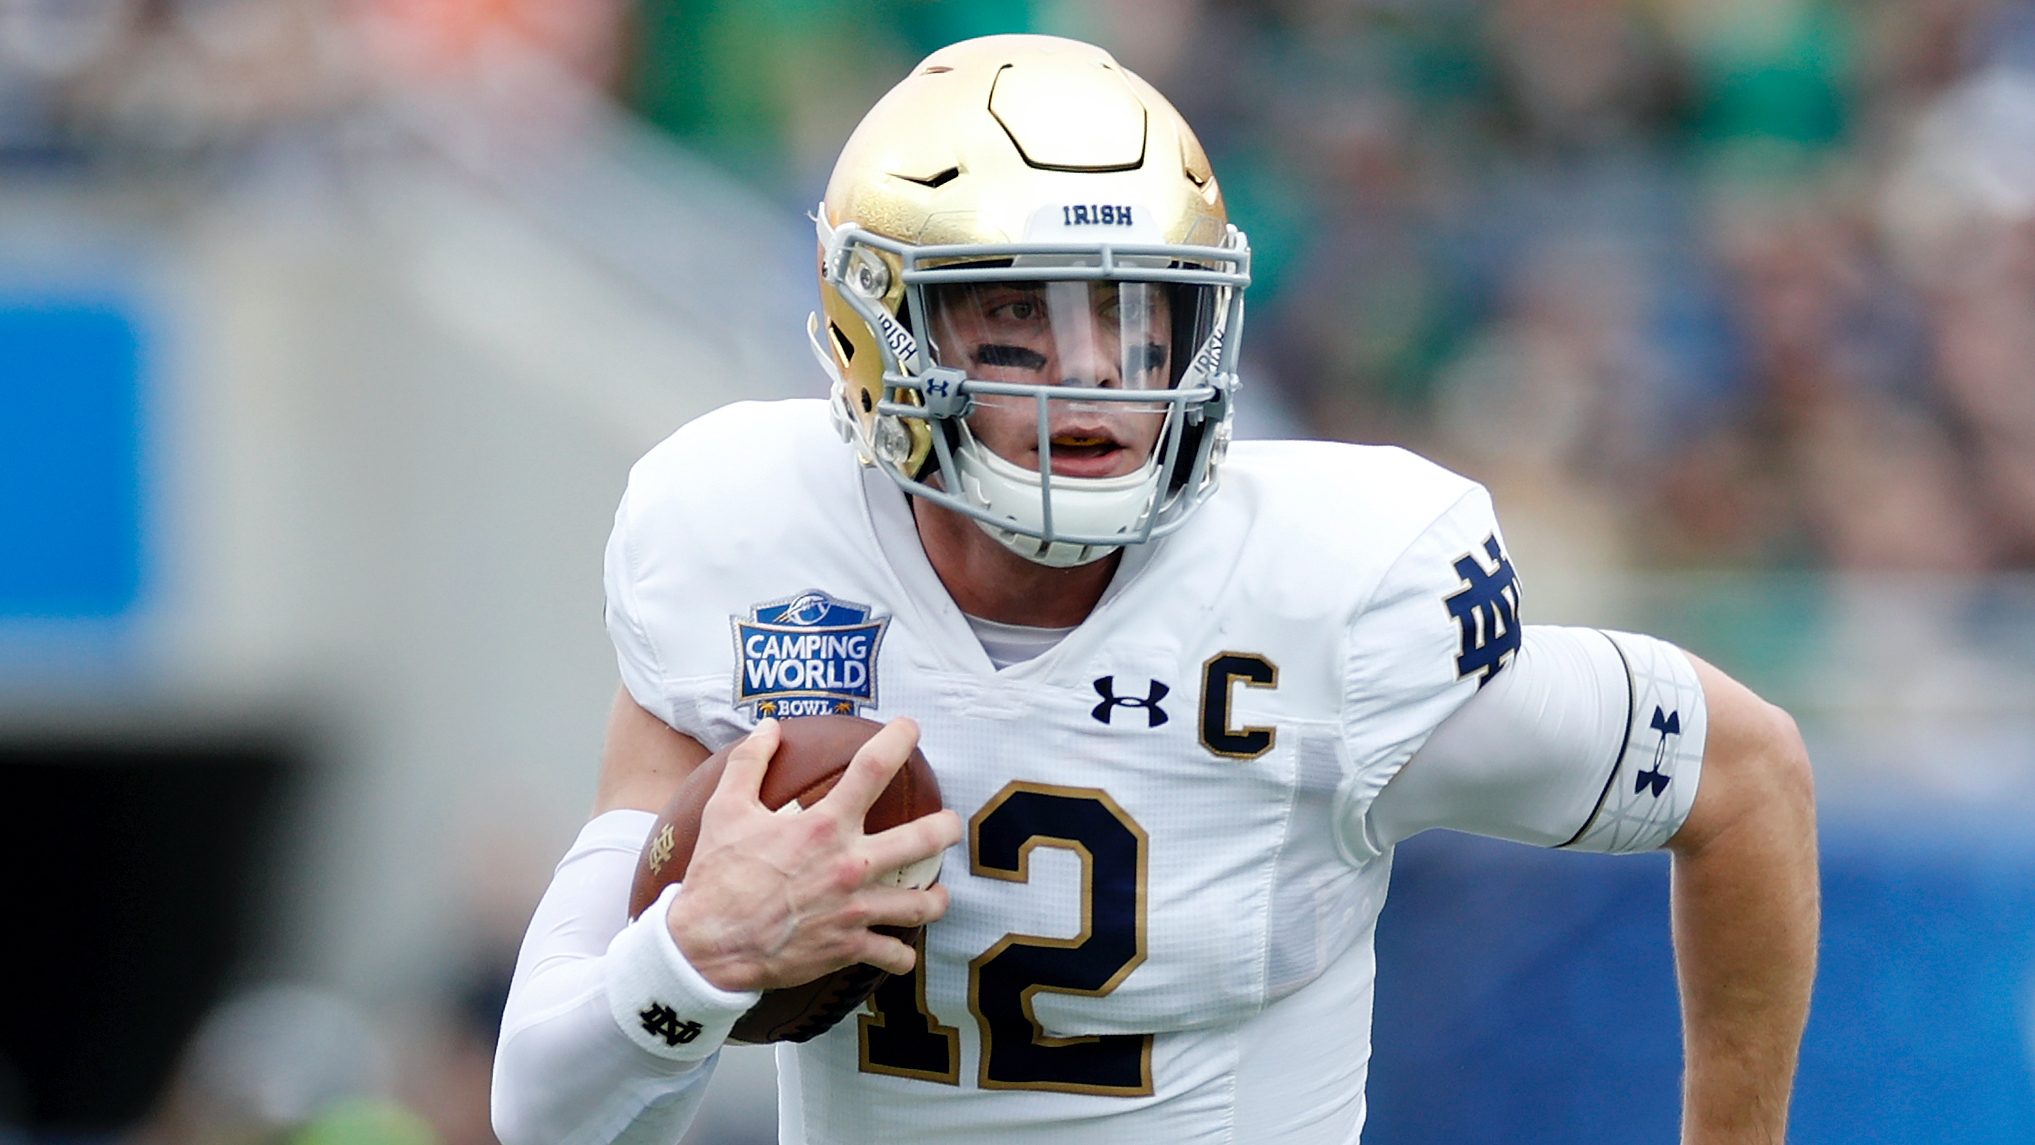 Notre Dame vs. Clemson Promo: Bet $5, Win $100 if Notre Dame Covers +50! article feature image